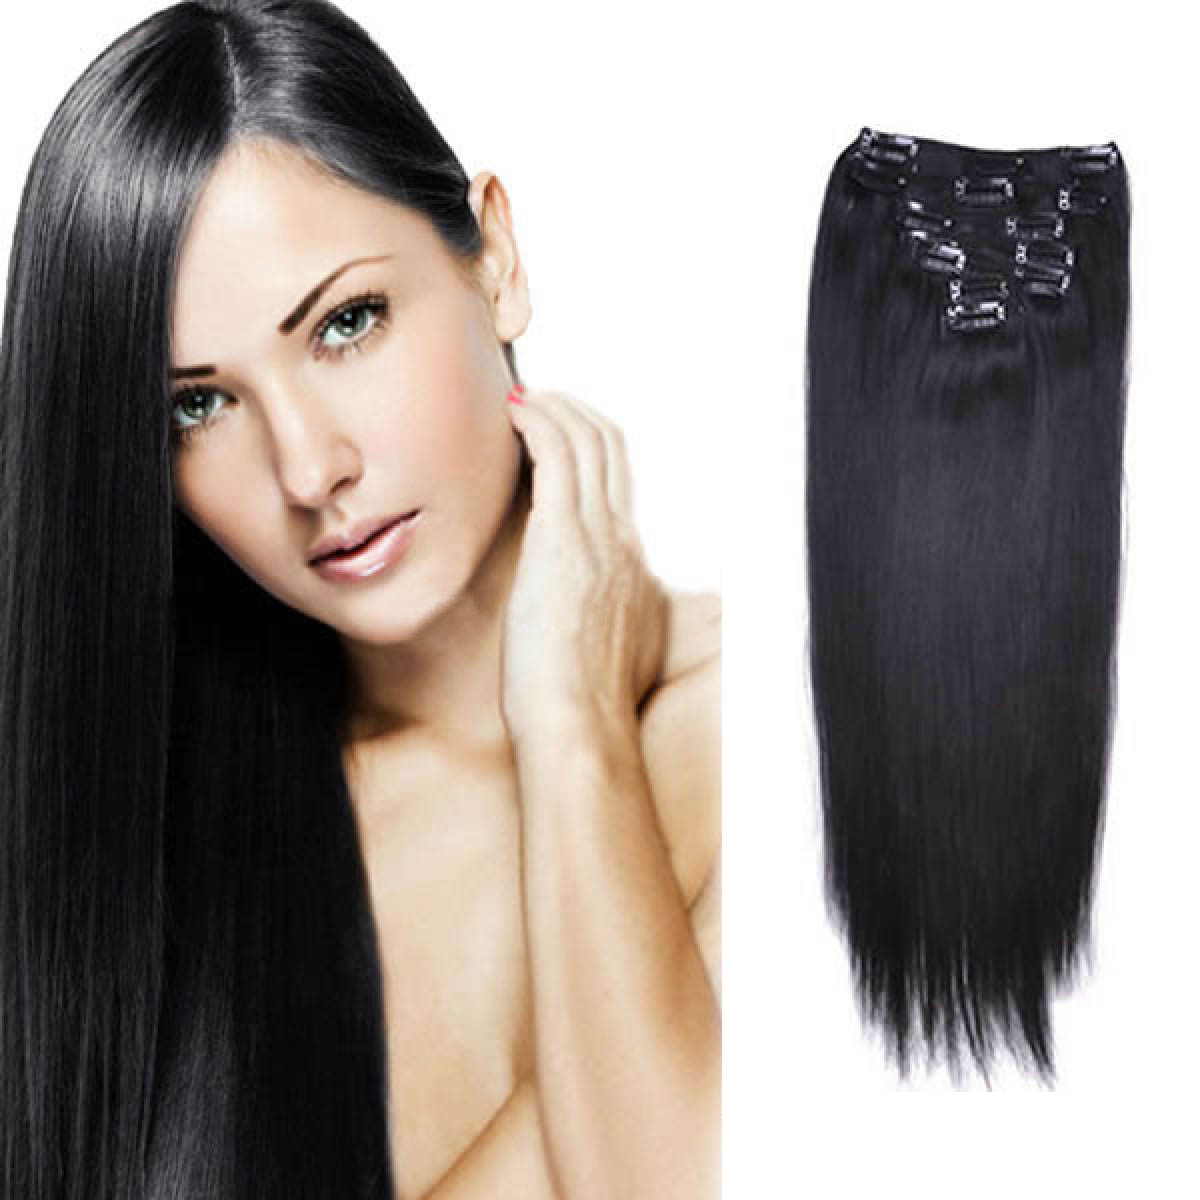 34 Inch 1 Jet Black Clip In Human Hair Extensions 11pcs